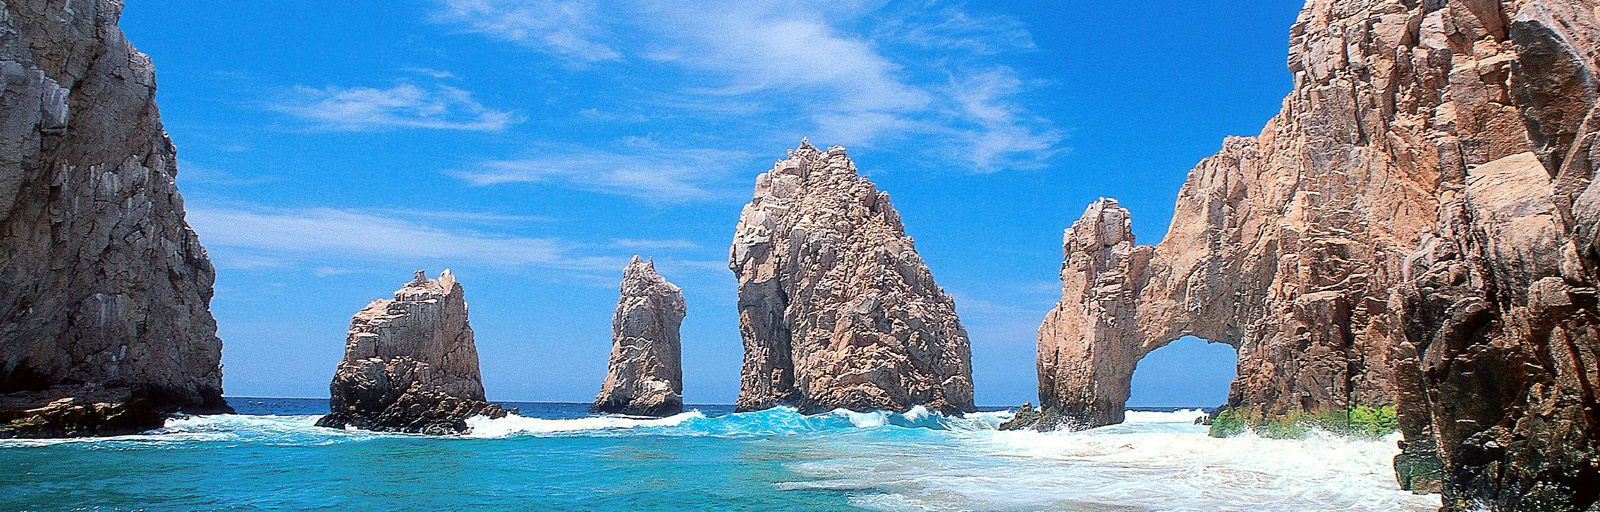 Baja Yoga Retreats in Mexico: Land's End - Cabo Arch